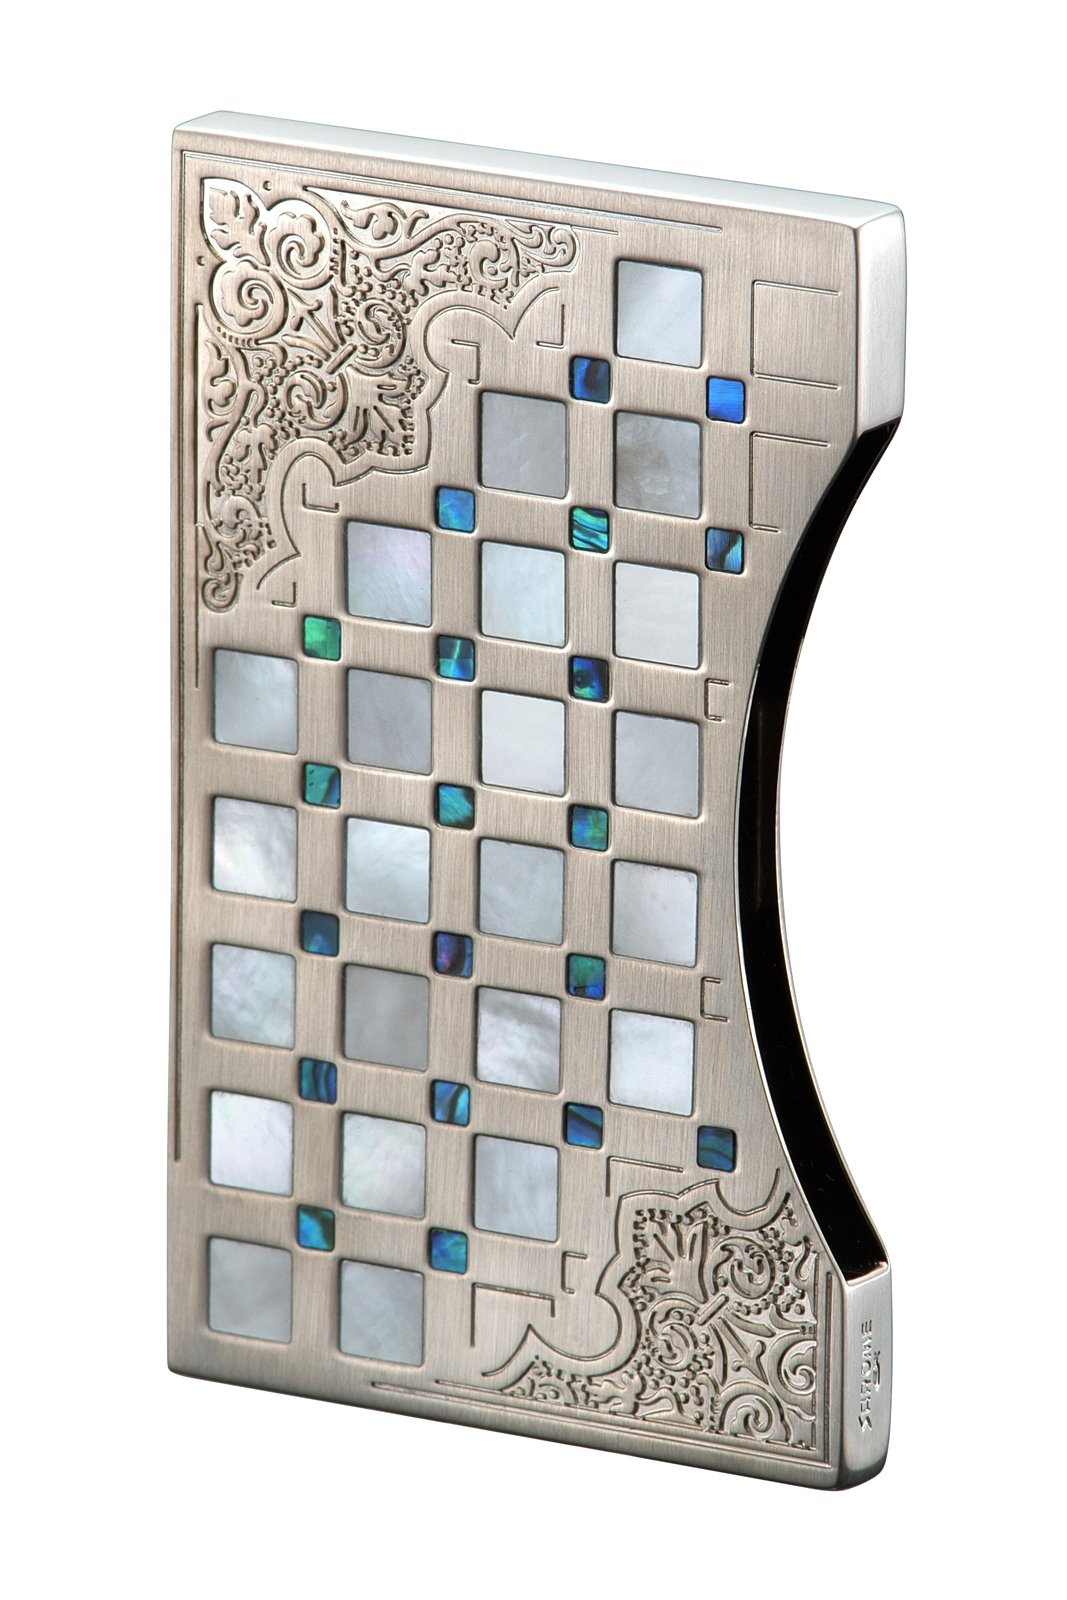 Sarome business card case EXNA1-01 Sliver arabesque / mother of pearl & abalone